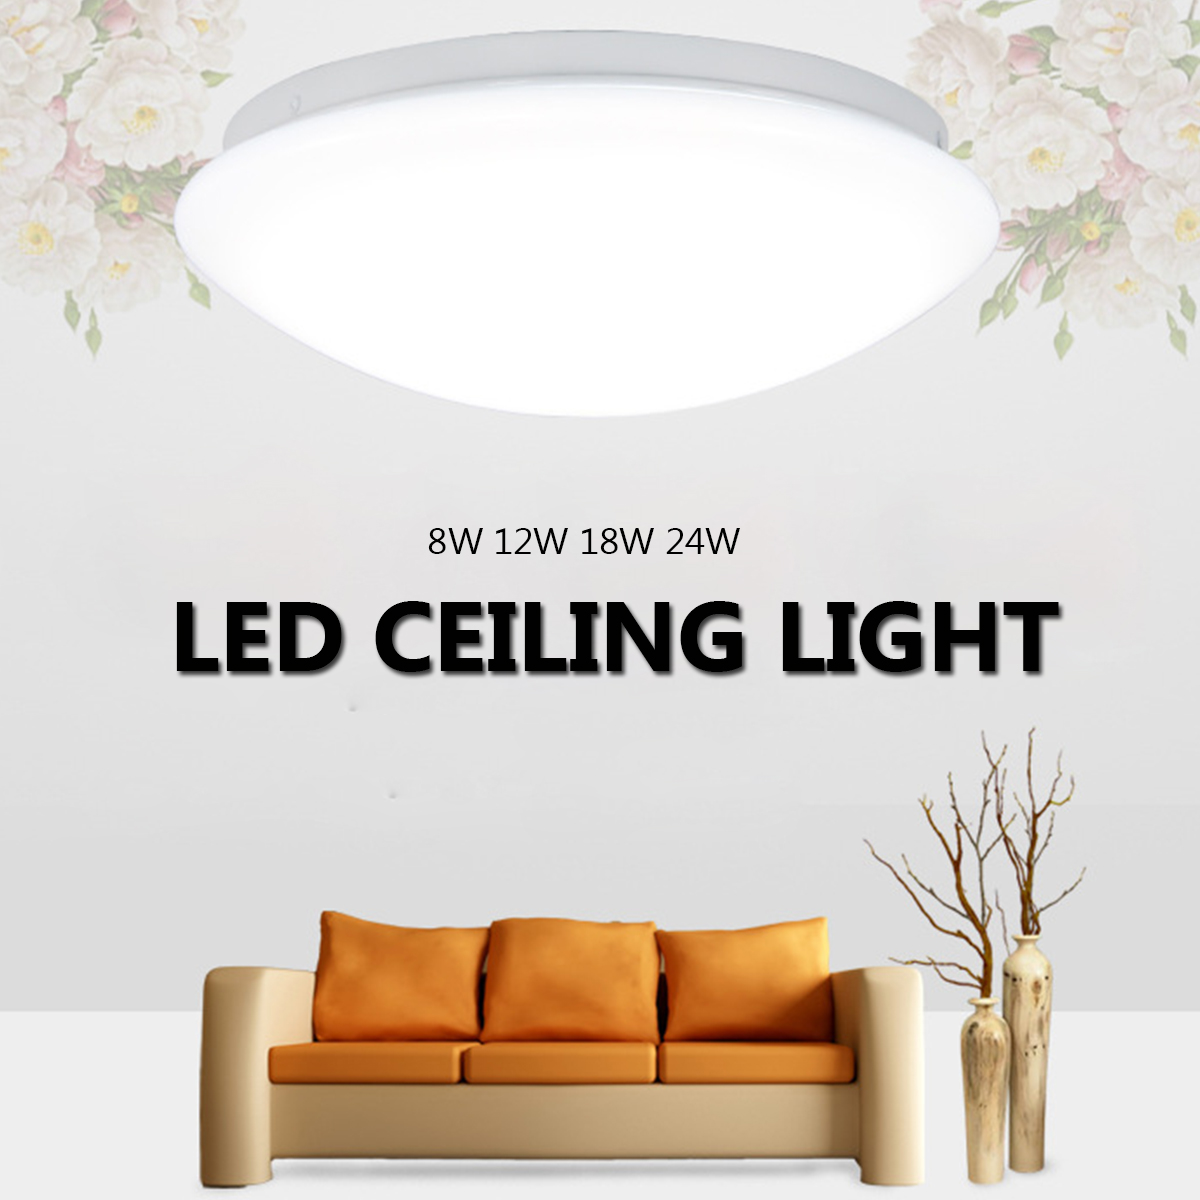 Ceiling Lights & Fans Responsible 8/12/18/24w Modern Round Led Ceiling Lights Lamp Luminaria Lampada Led For Living Room Bedroom Home Decorative Fixtures